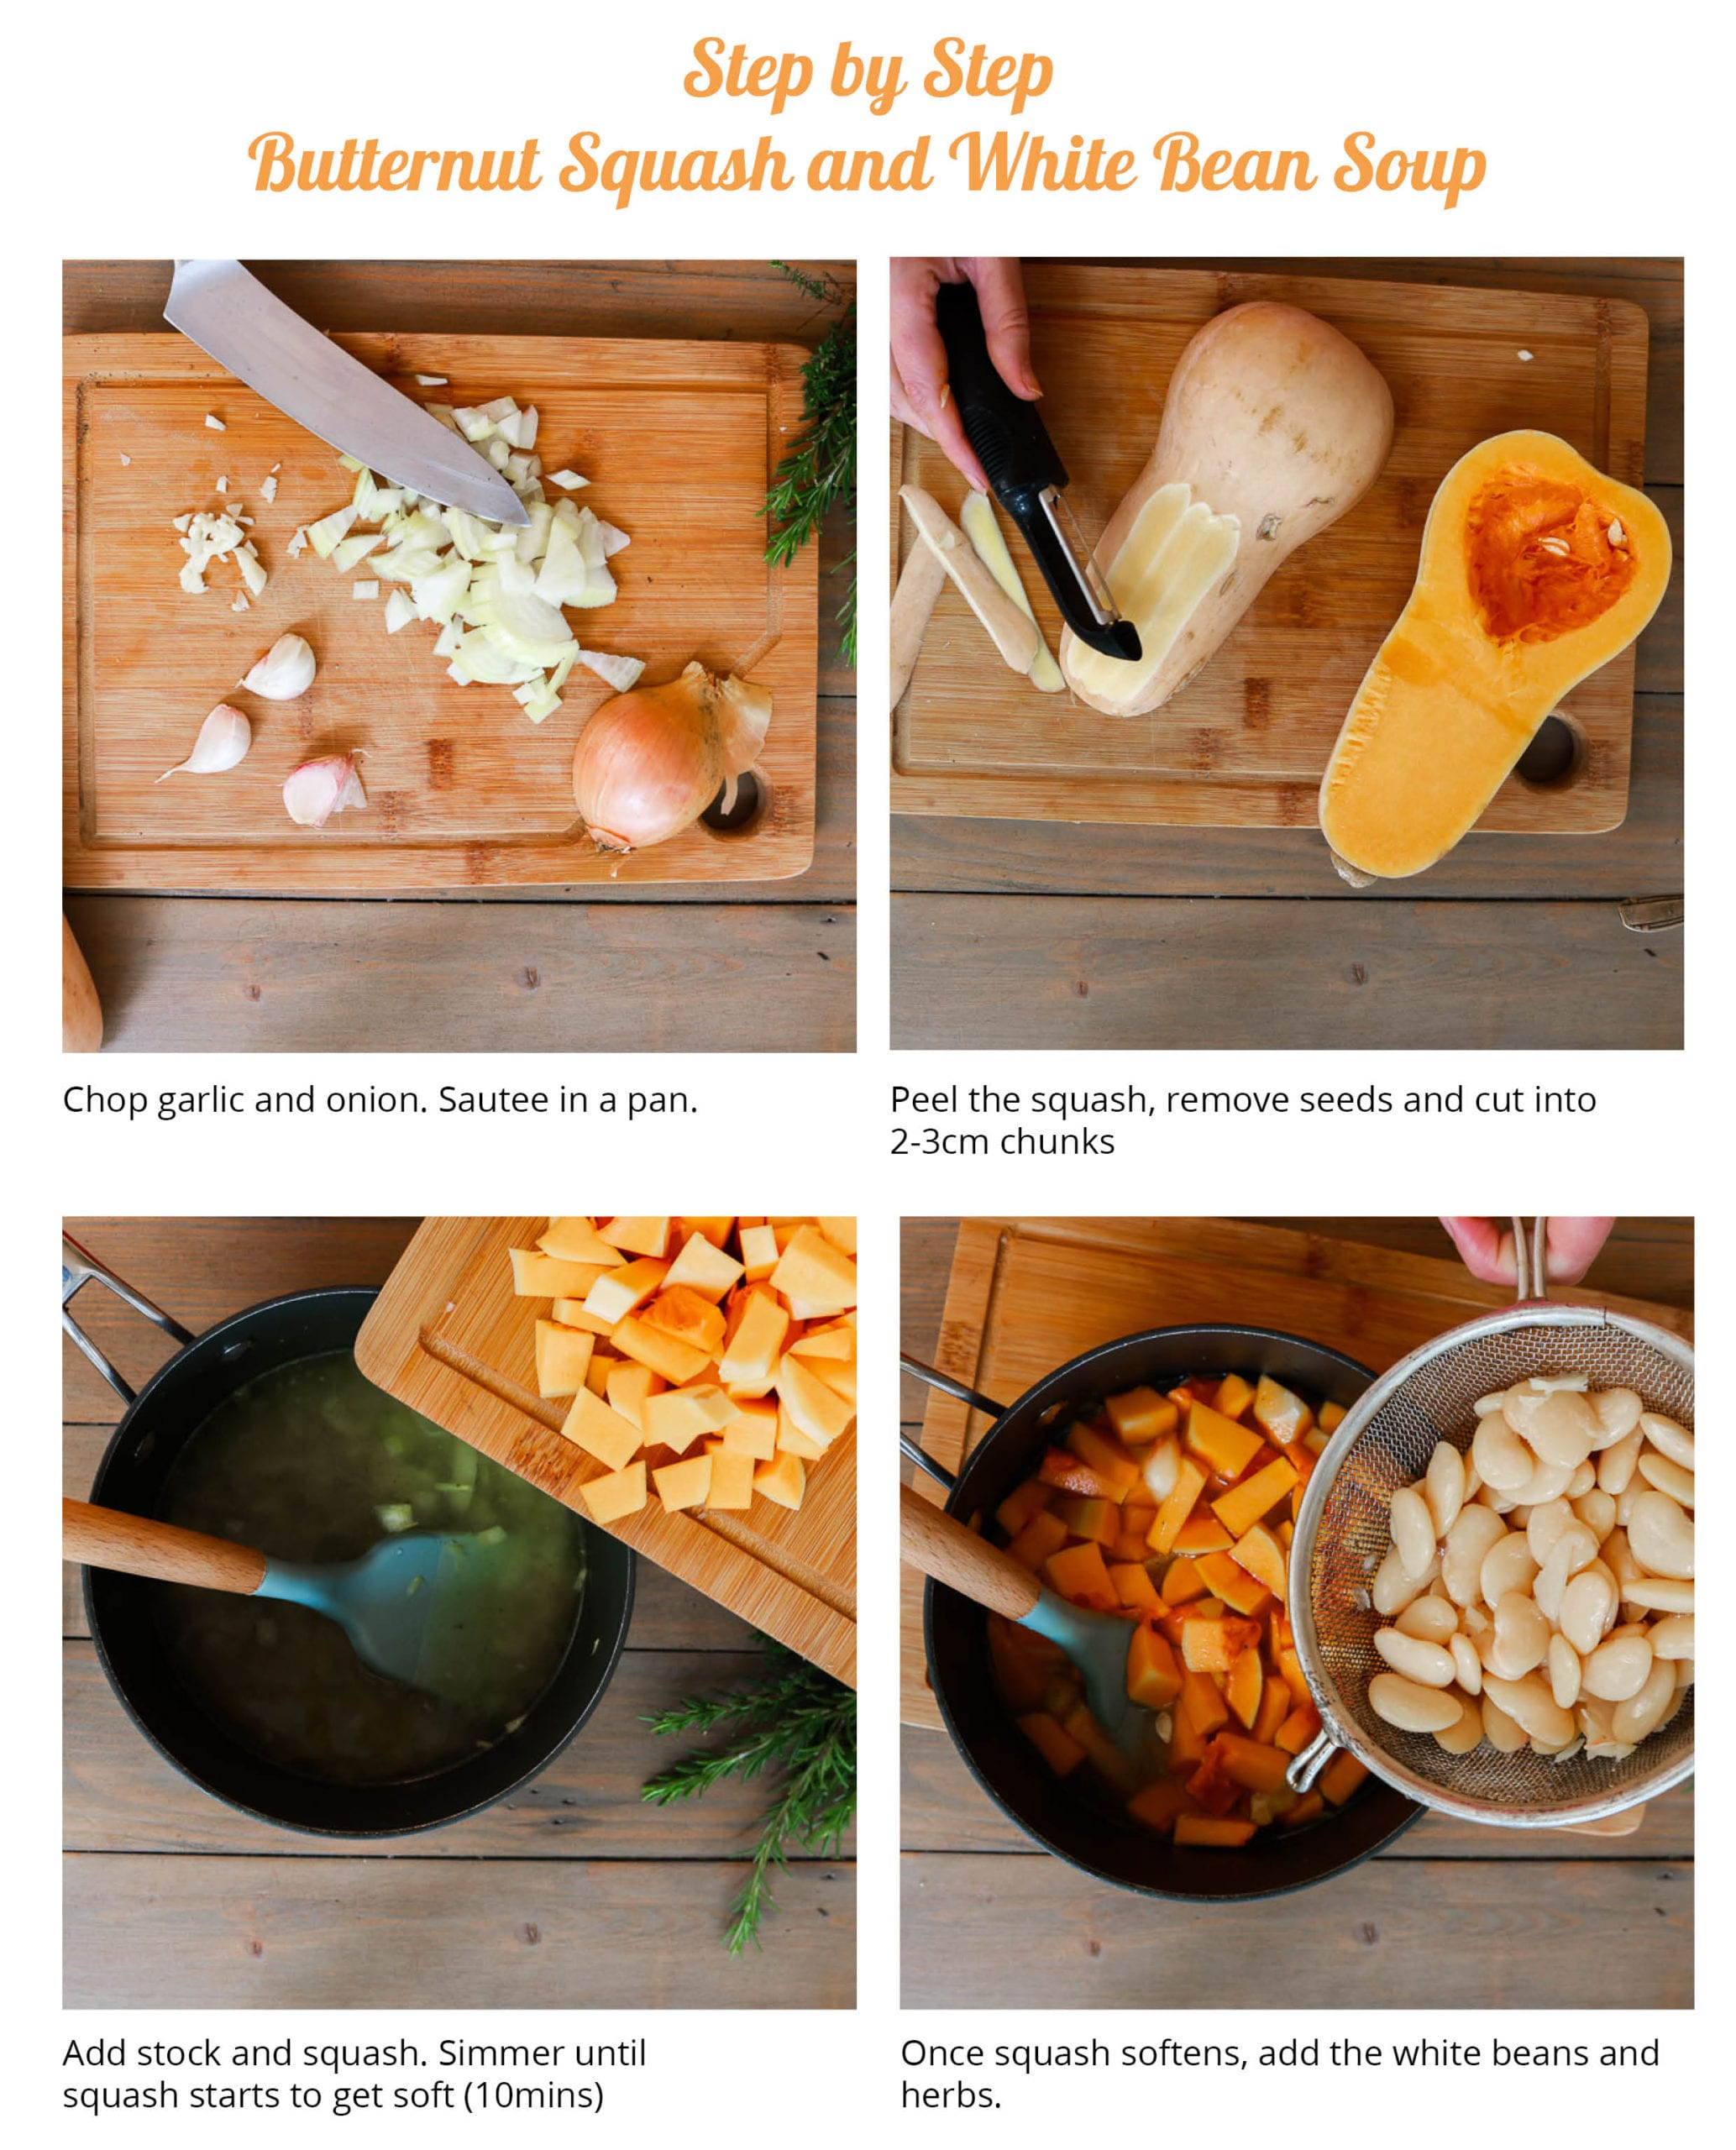 Step by Step butternut squash soup instructions.